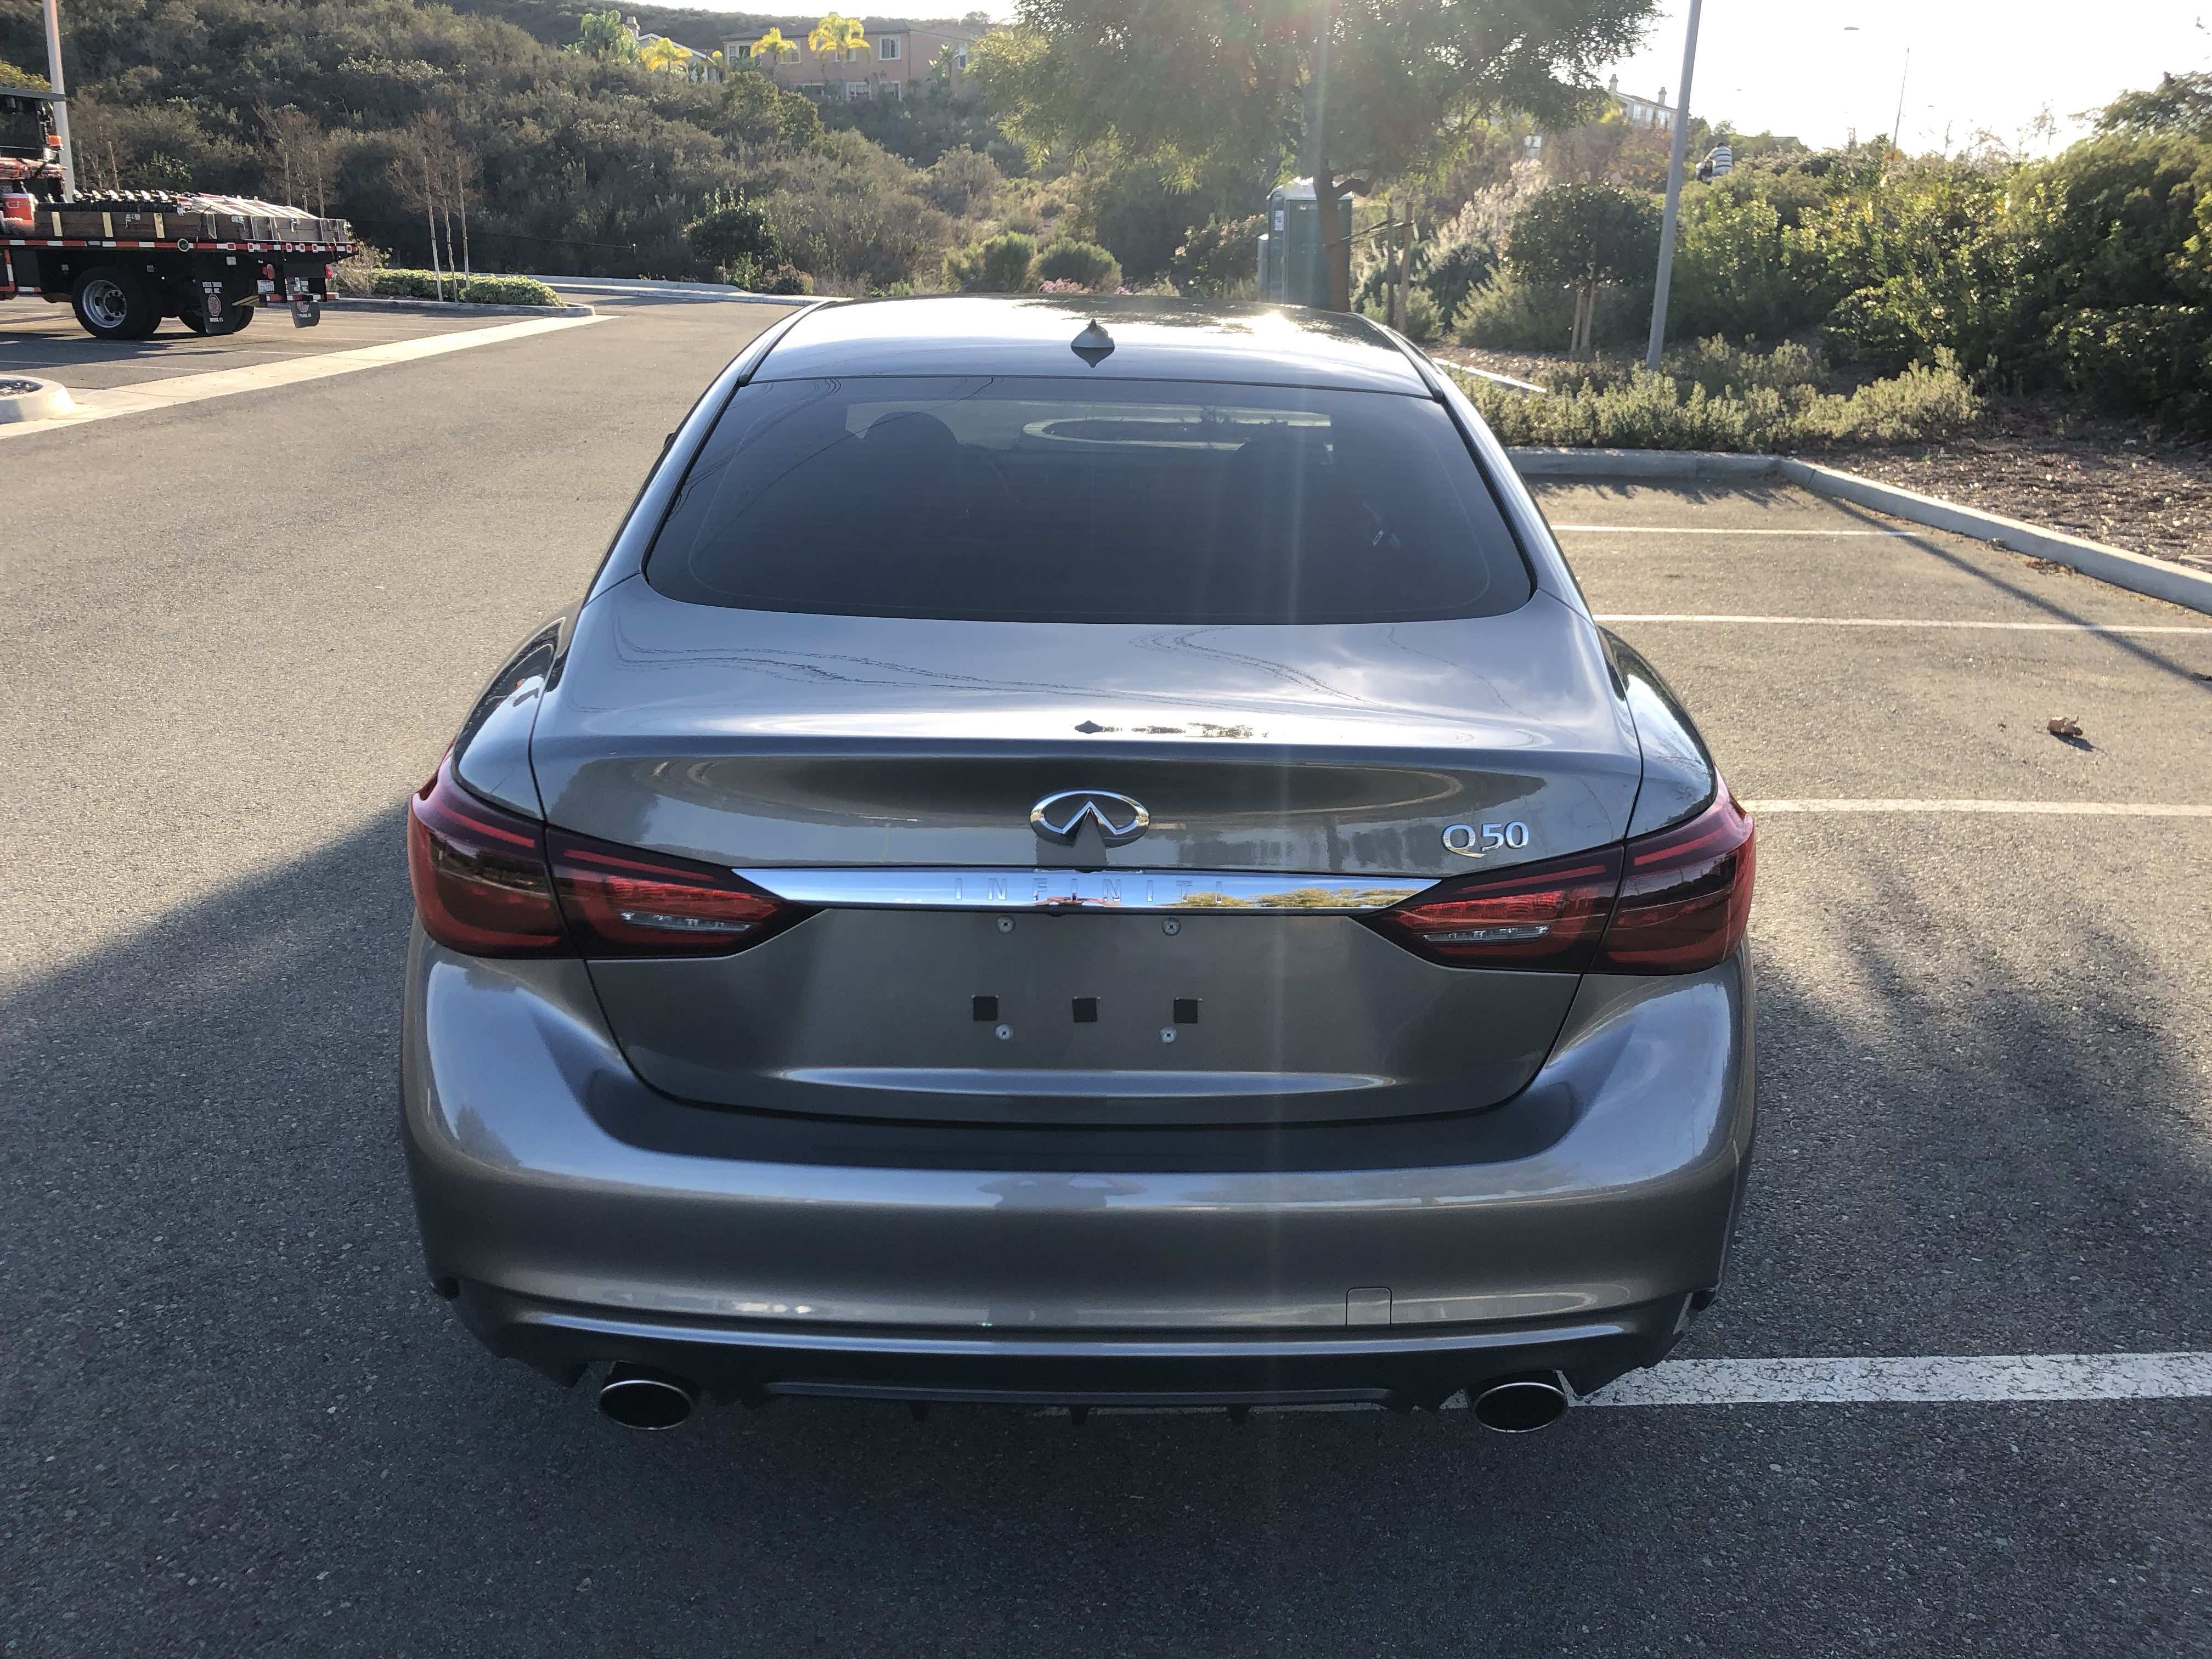 SOCAL For Sale 2018 Infiniti Q50 3 0t LUXE $33 000 Marketplace